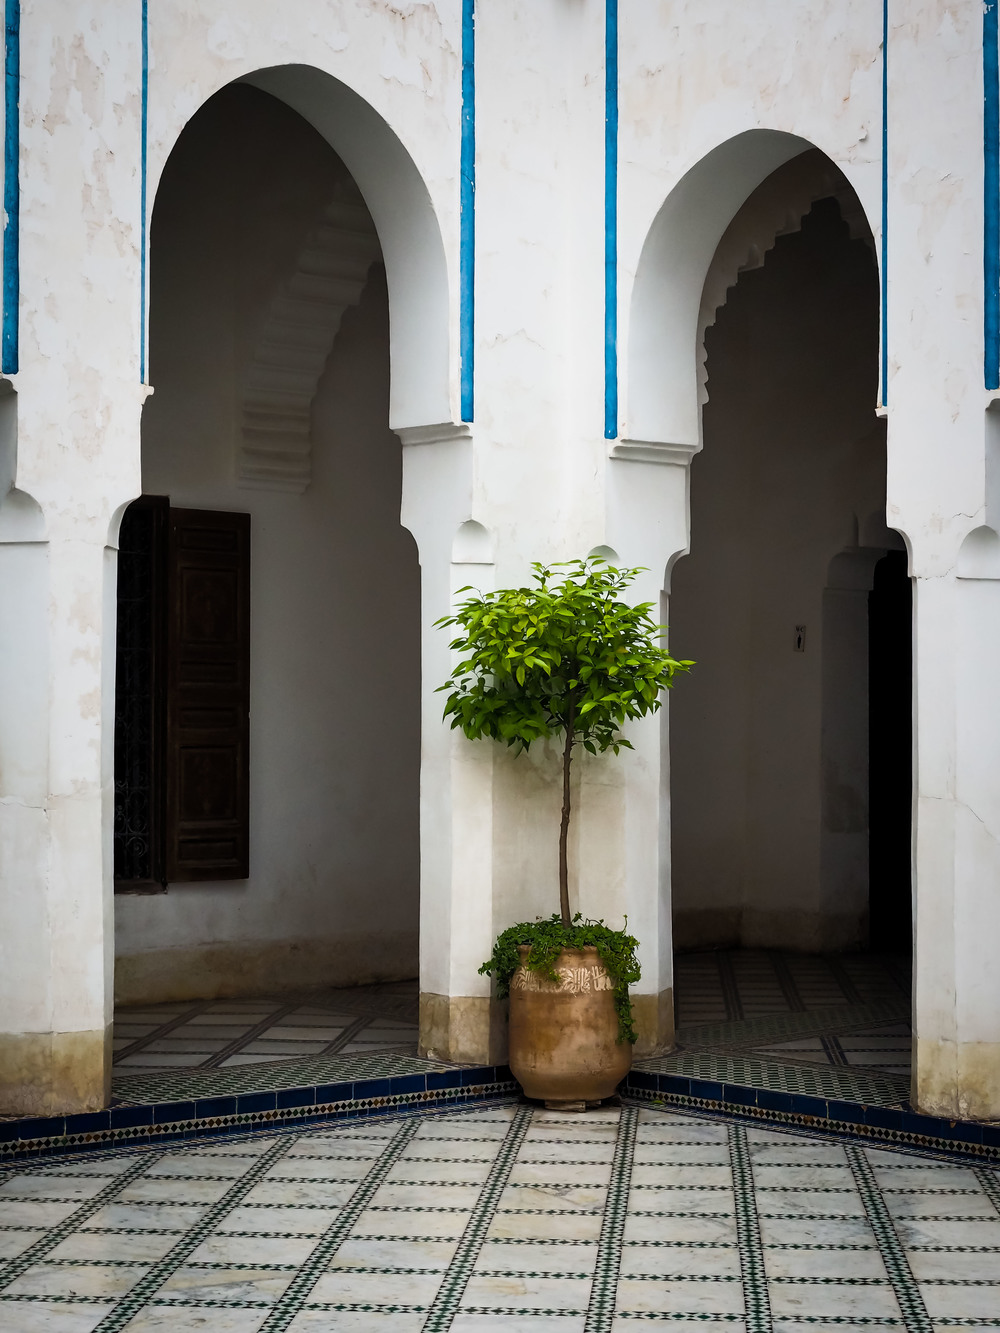 Ben Youssef Madrasa. The open courtyards in the center of most buildings is a charming hallmark of Moroccan architecture.